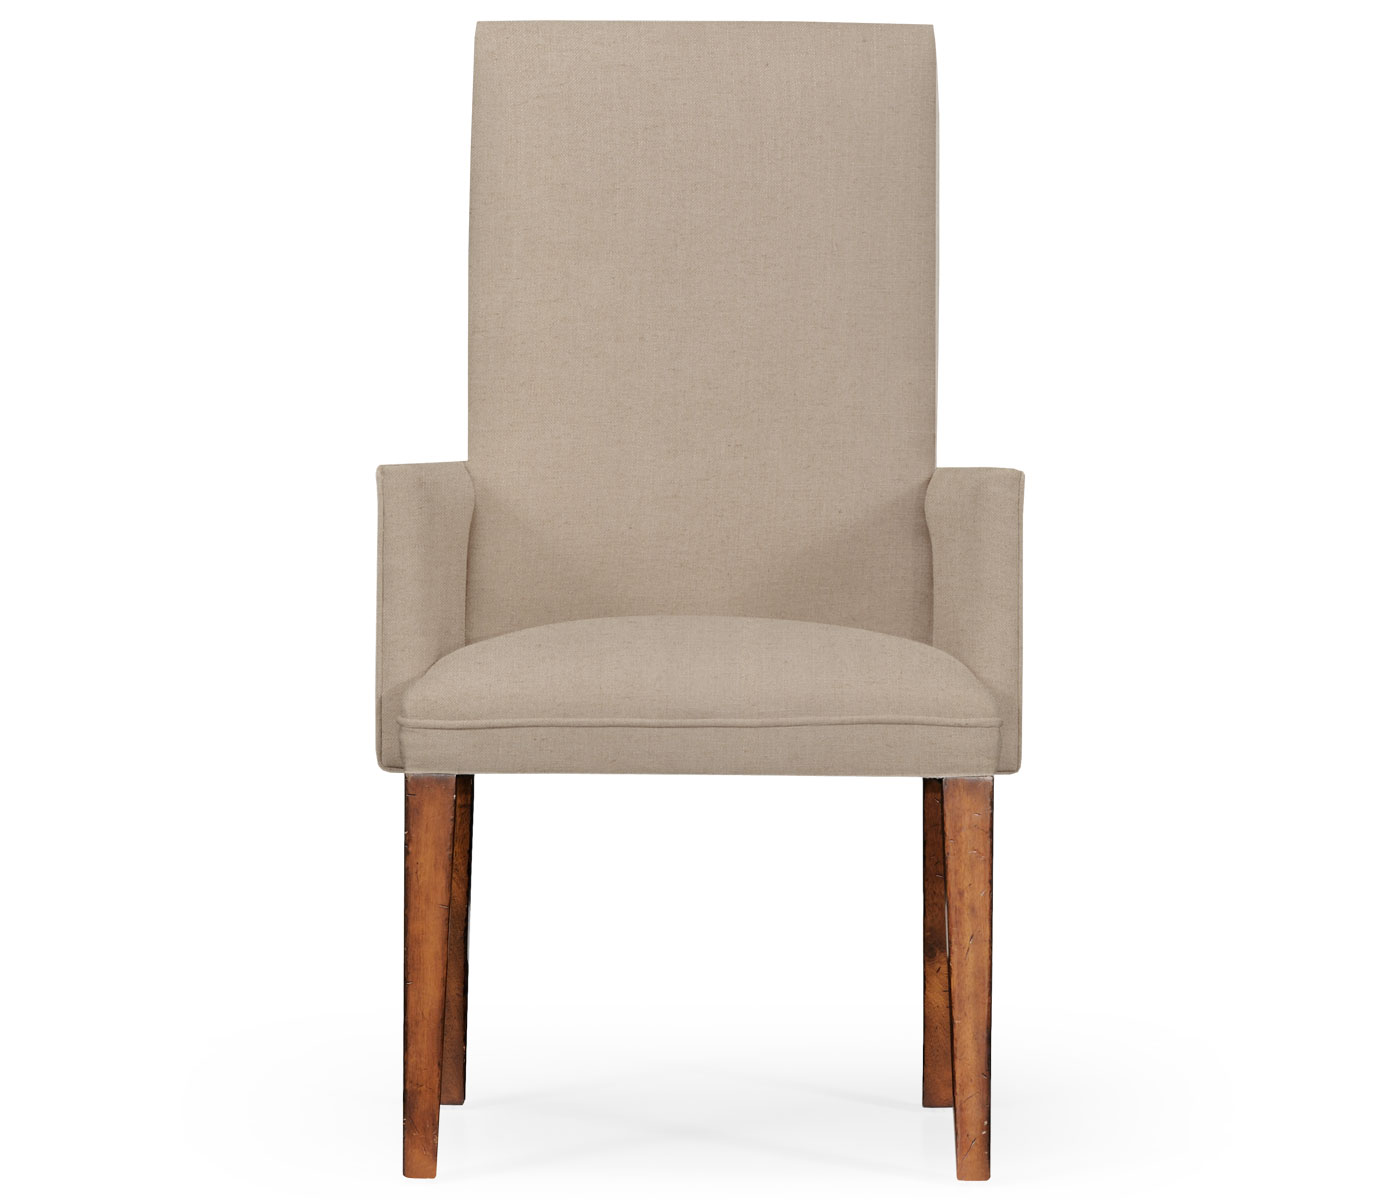 Fully Upholstered Dining Chair Arm : 493899 2 1400x1200 from www.jonathancharlesfurniture.com size 1400 x 1200 jpeg 96kB